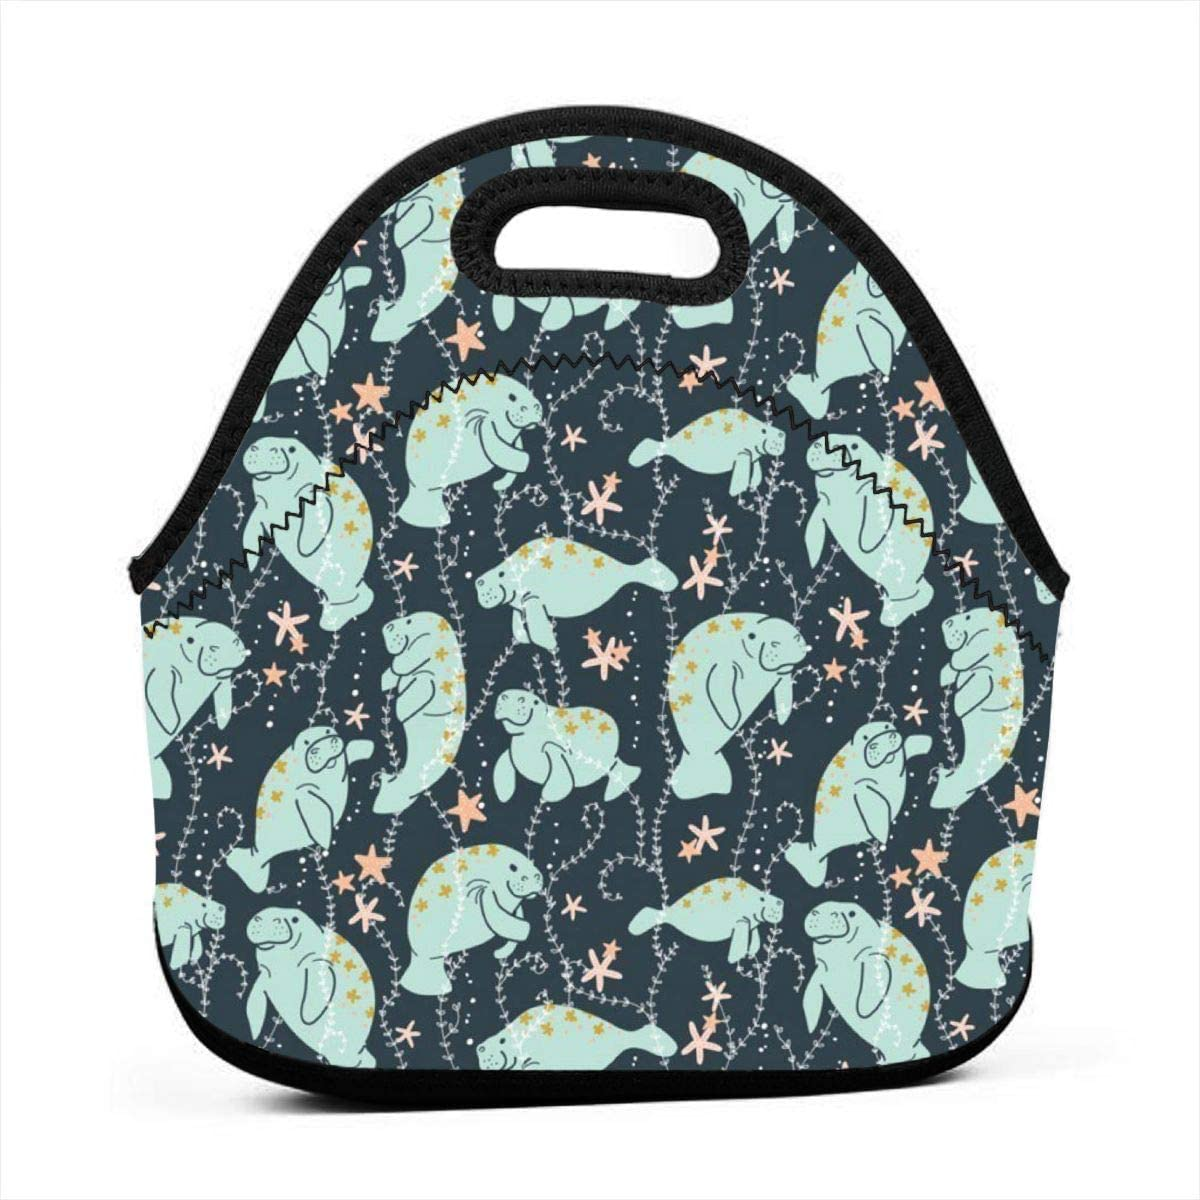 Manatee Animals Insulated Neoprene Lunch Bag Tote Handbag lunchbox Food Container Gourmet Tote Cooler warm Pouch For School work Office